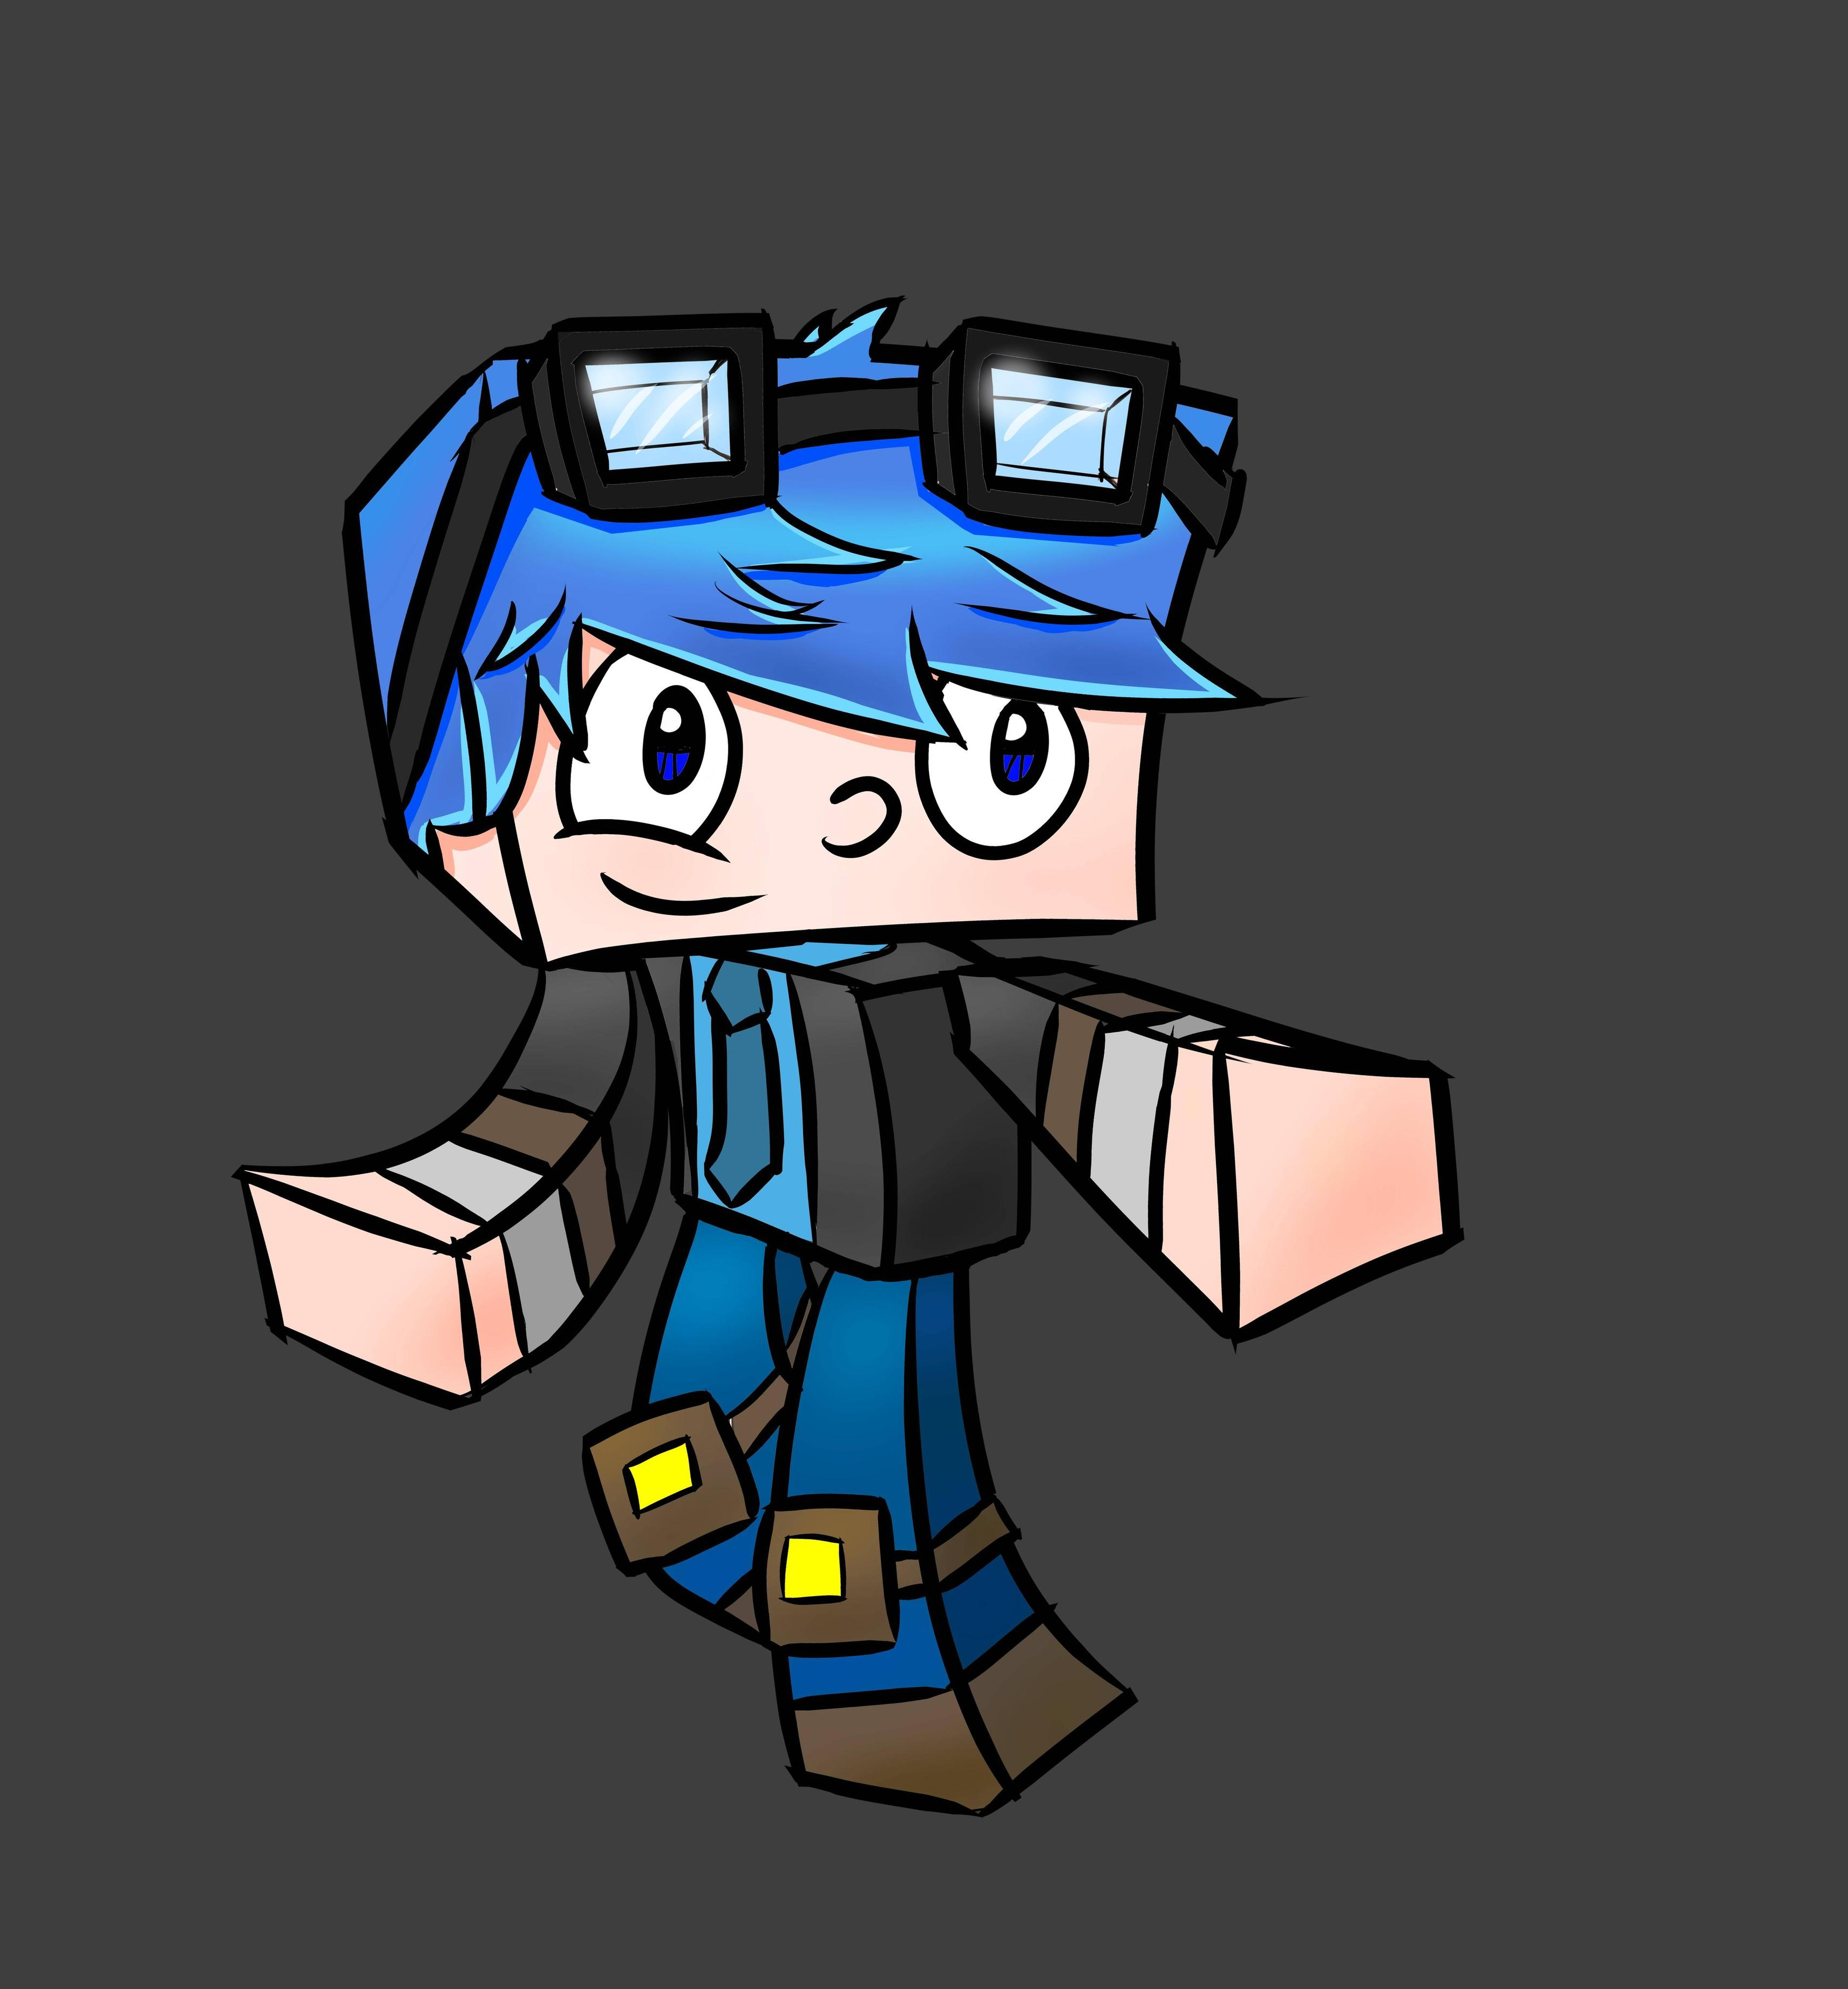 Dantdm Drawing Minecraft at GetDrawings com | Free for